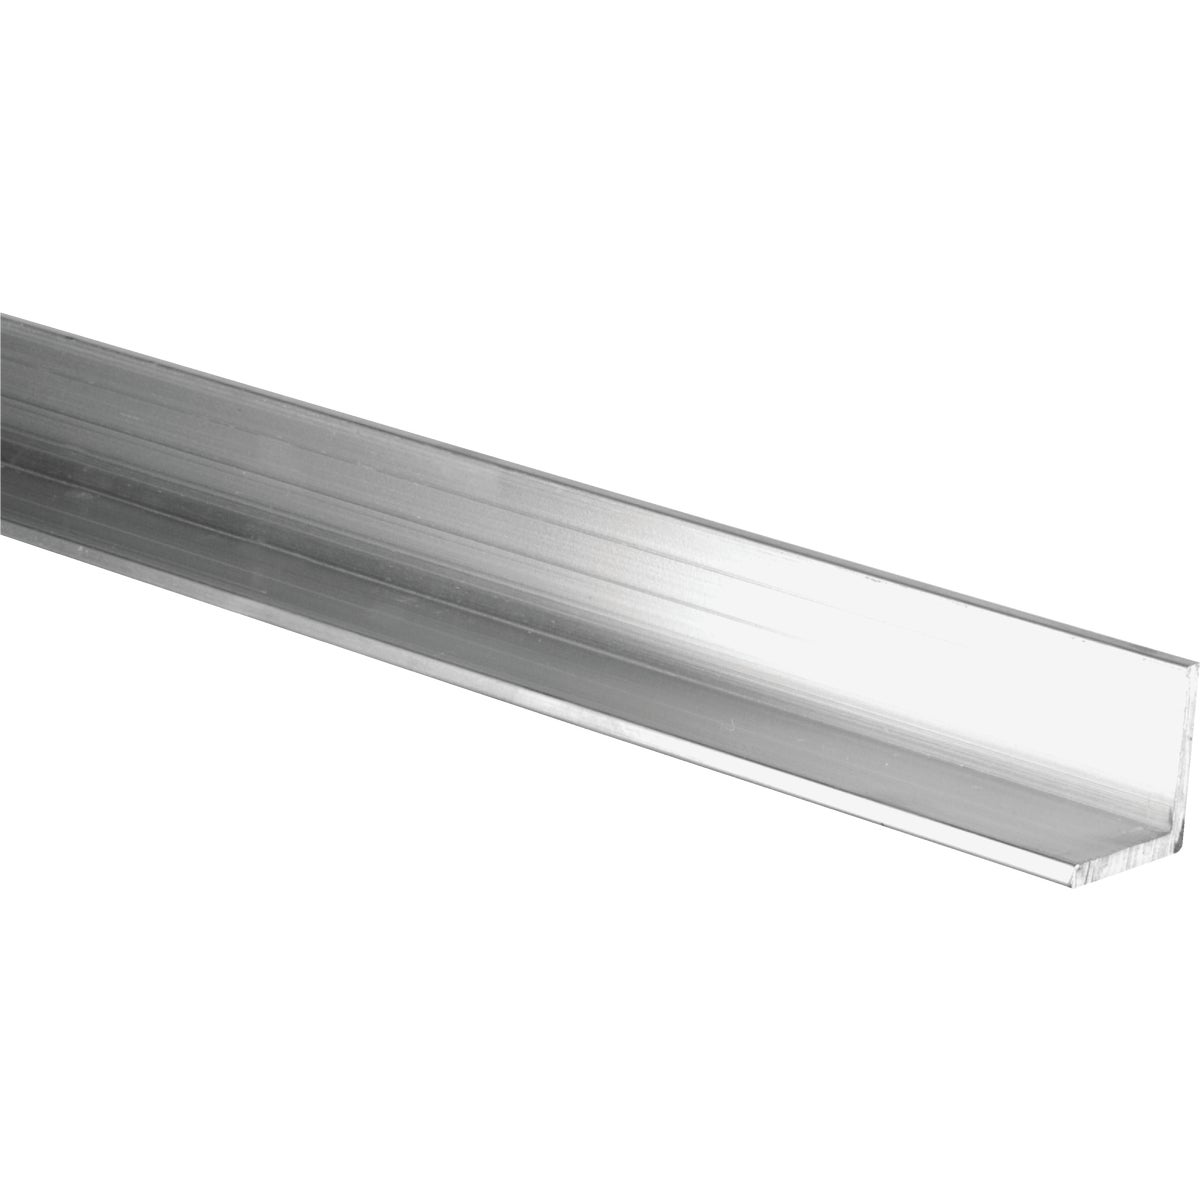 1X1/16X48 MILL ANGLE - N247320 by National Mfg Co